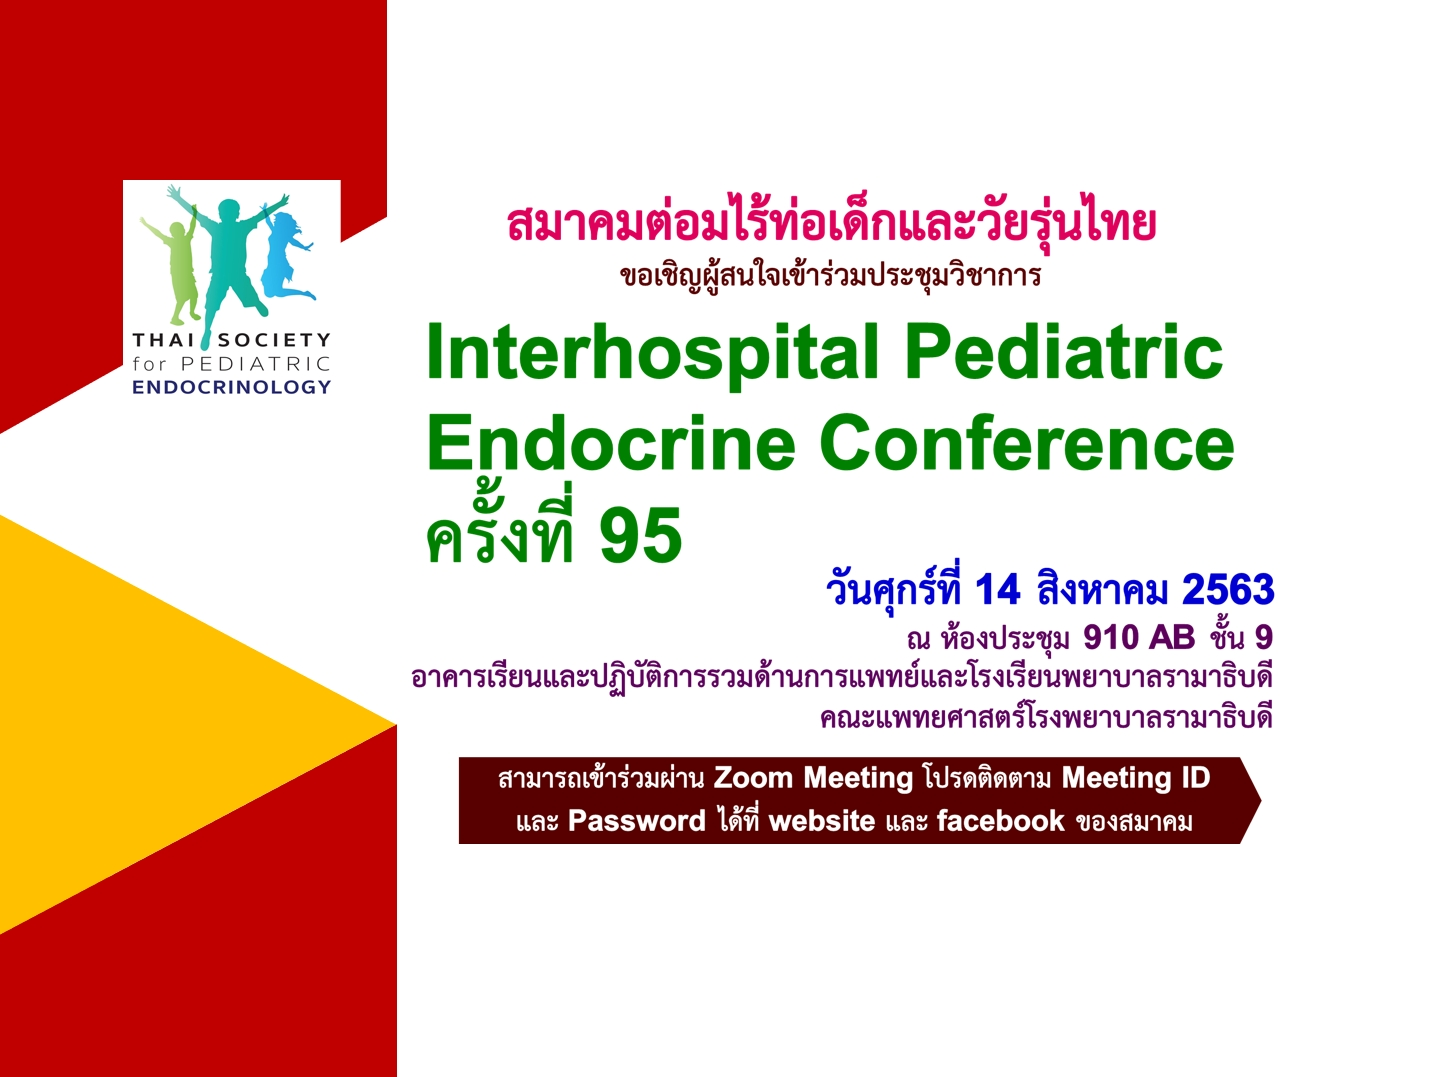 Interhospital Pediatric Endocrine Conference ครั้งที่ 95